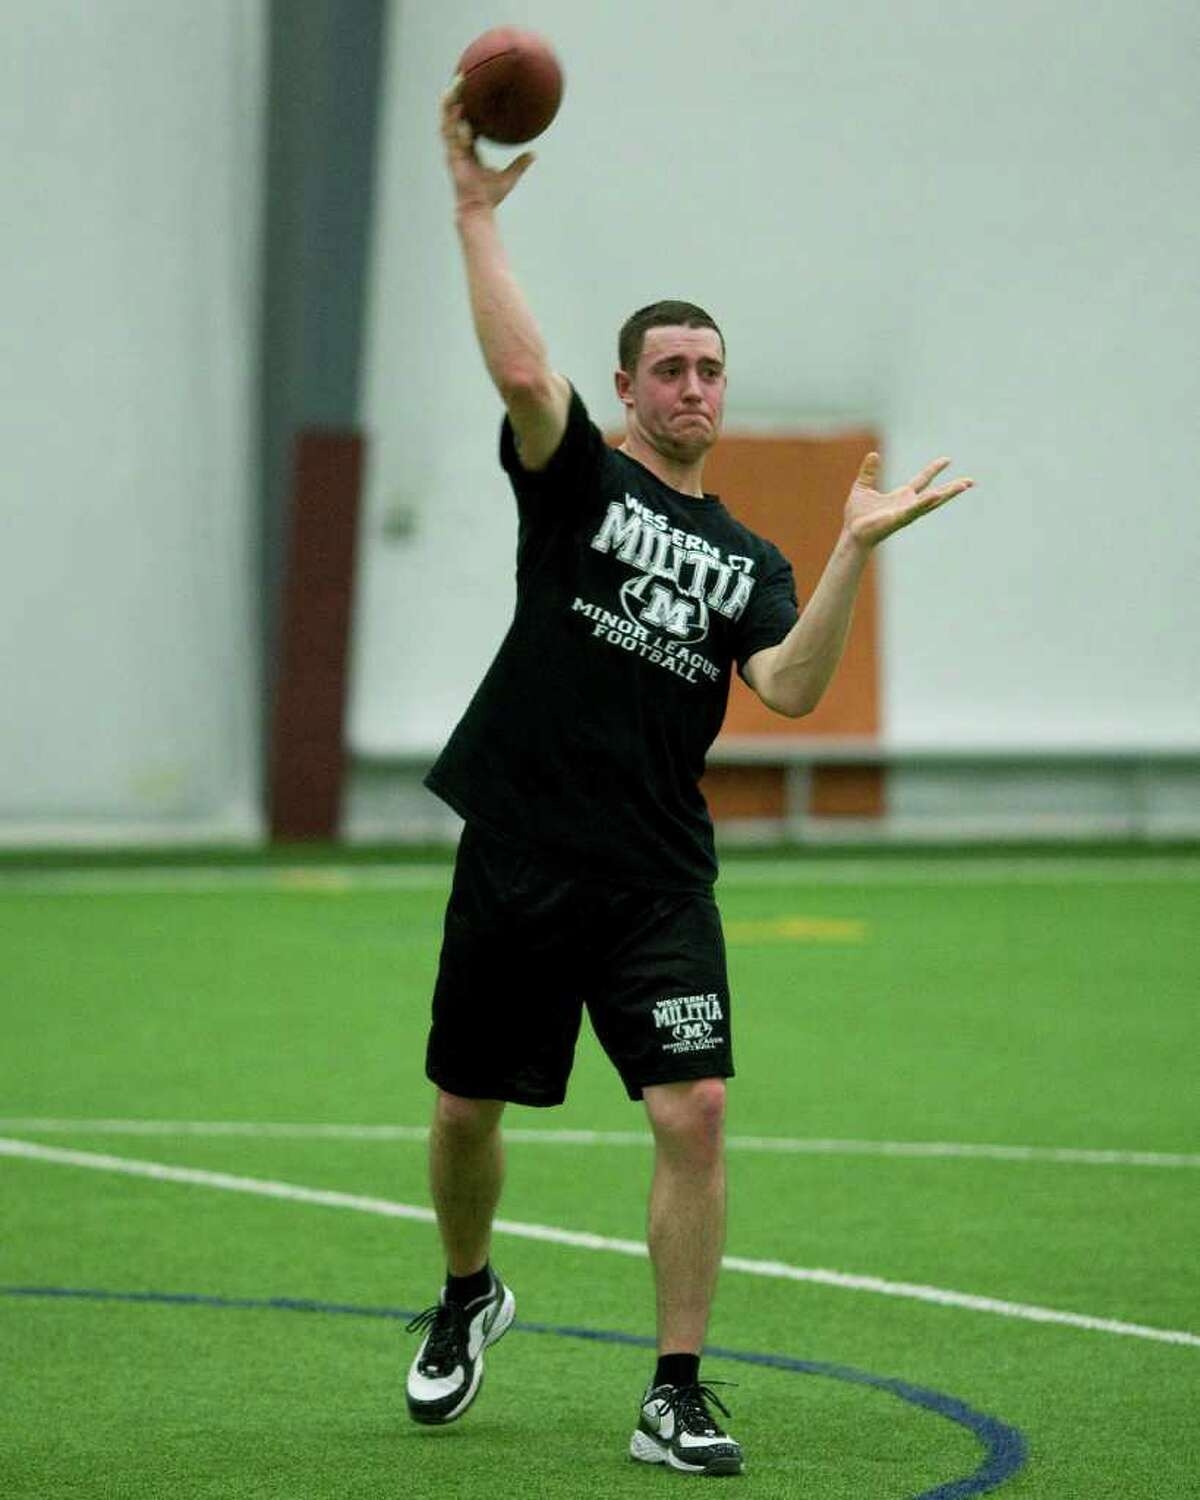 New Milford High graduate Kevin Oberg fires a pass during the training camp opener of Western Connecticut Militia Thursday night at the Newtown Youth Academy.